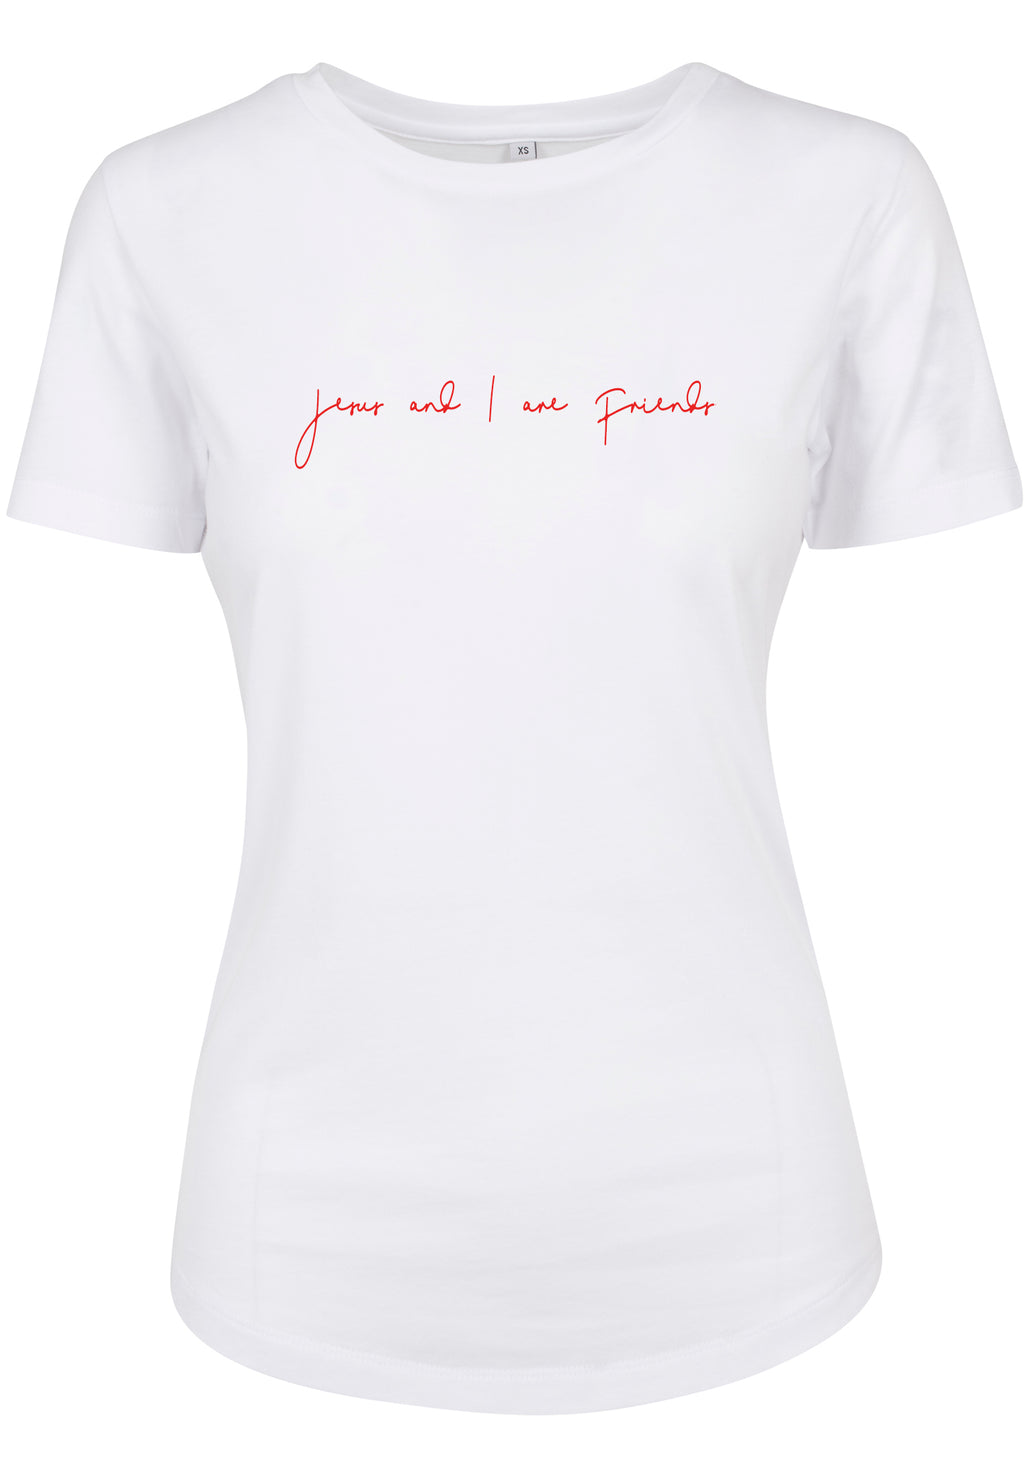 Womens JESUS AND I Fitted Tee (White with Red)